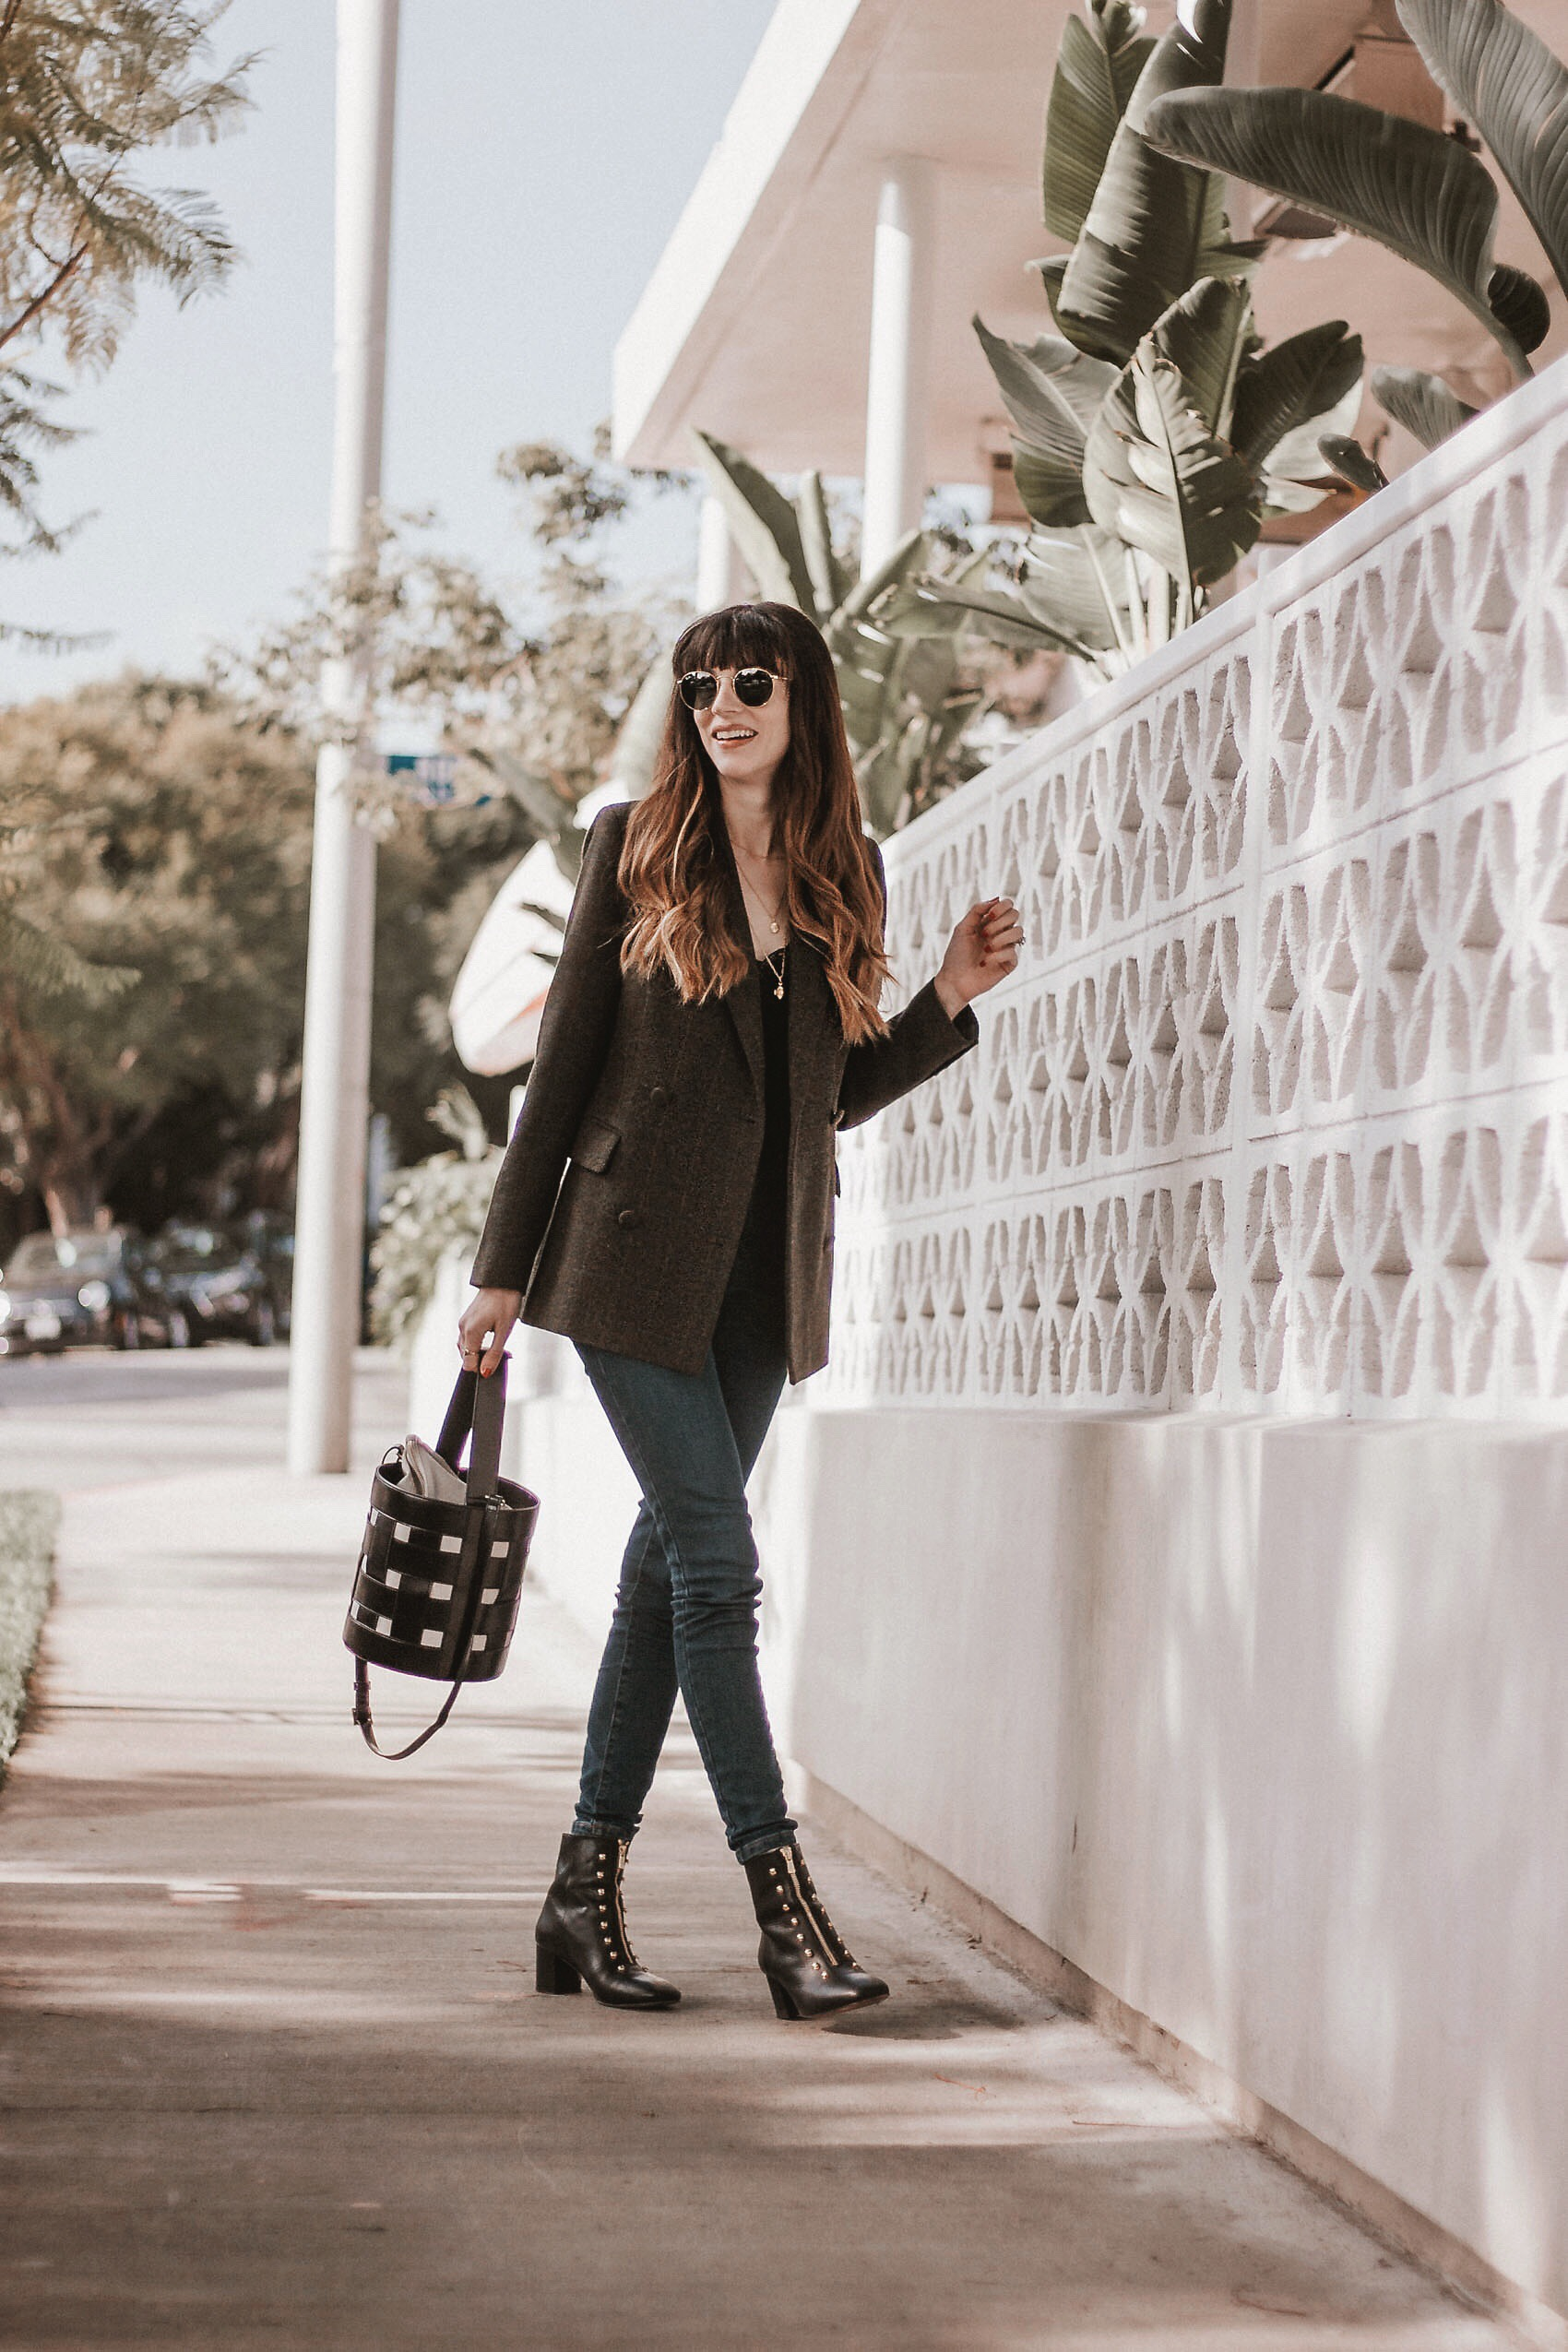 Jeans and a Teacup, Vasic New York Bucket Bag, An Hour and a Shower Booties, Everlane jeans